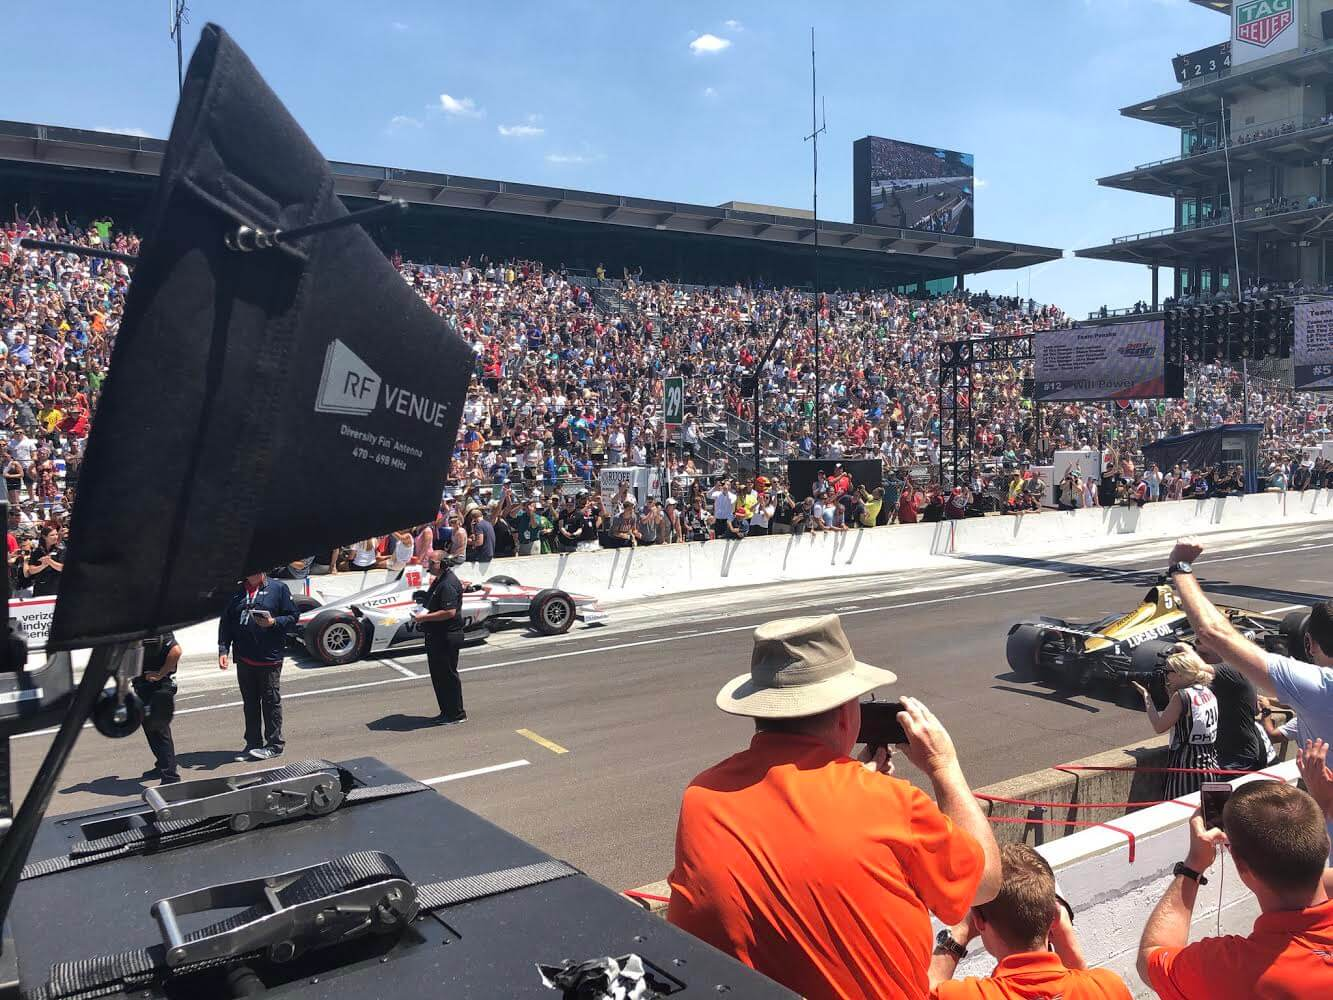 Diversity Fin Antenna at the Indy 500